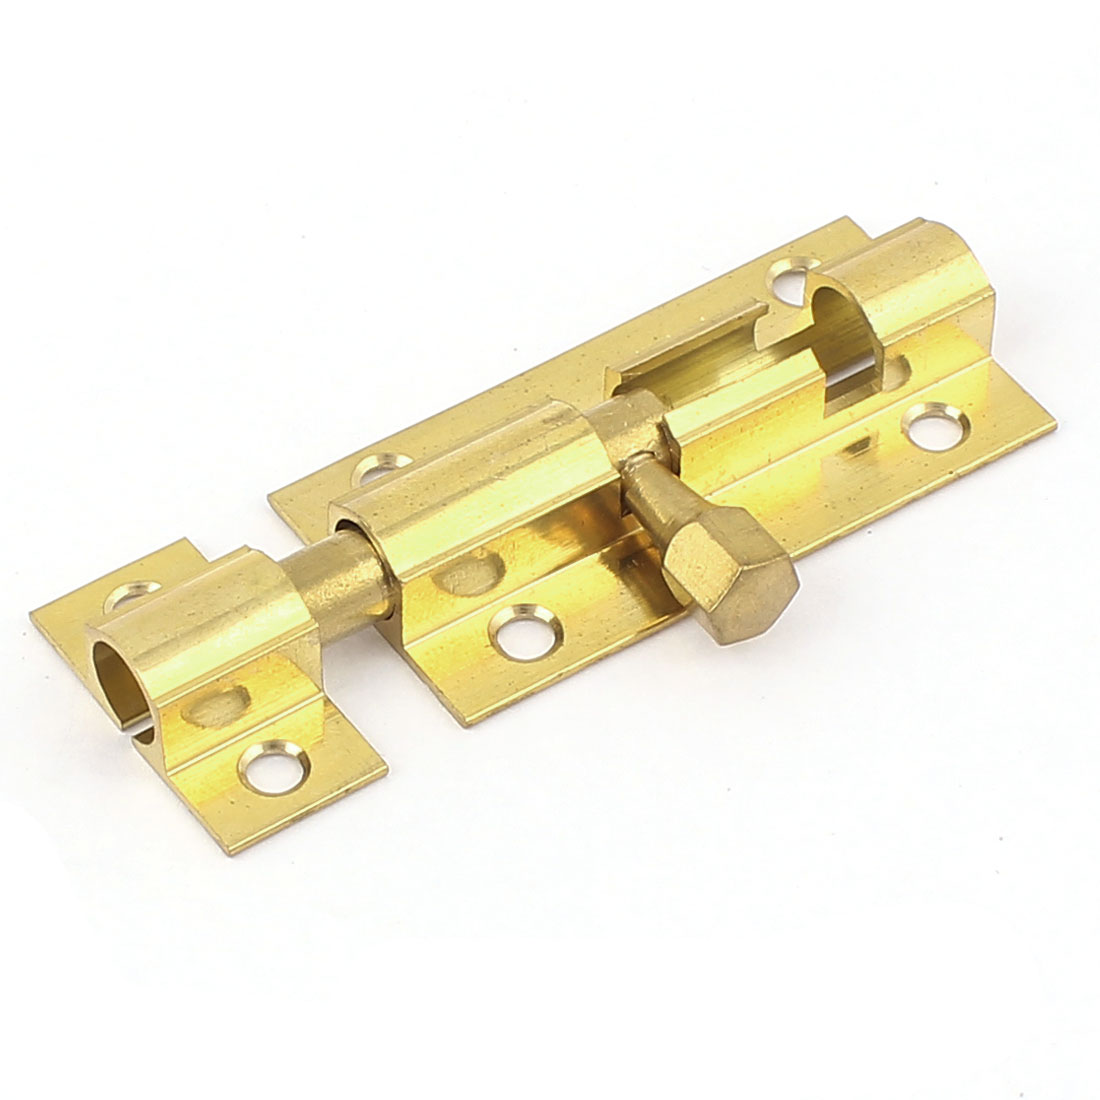 "2"" Length Brass Door Security Latch Sliding Lock  Bolt Gold Tone"